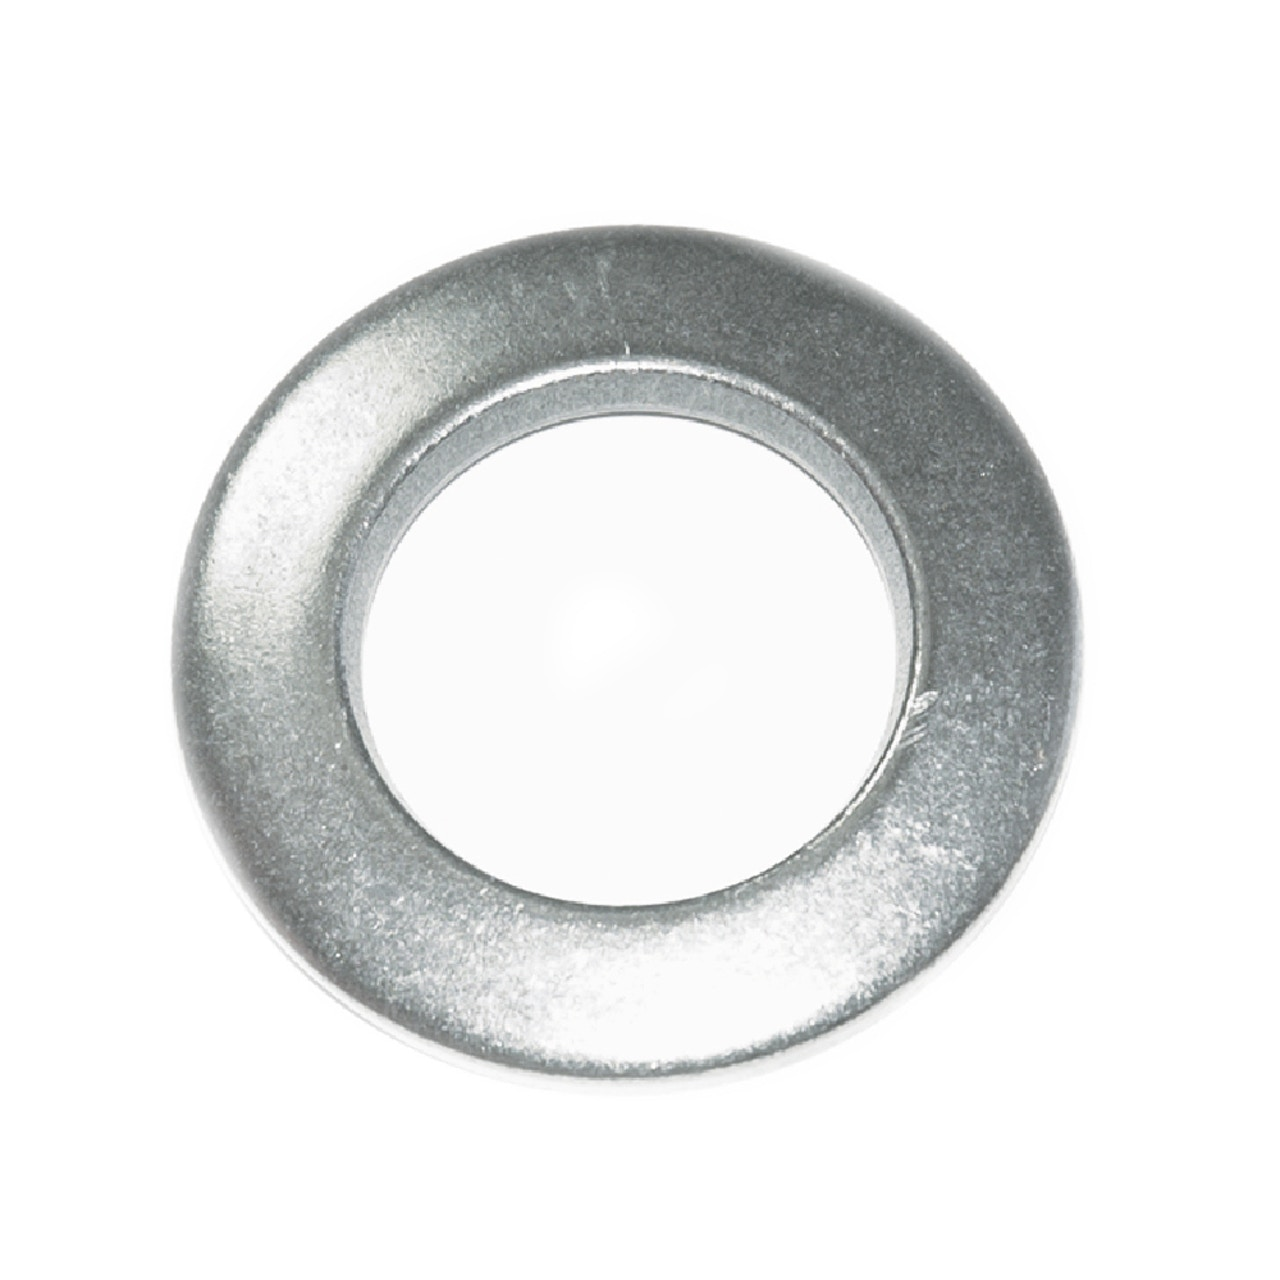 MW Components - MFL-series disc spring washers